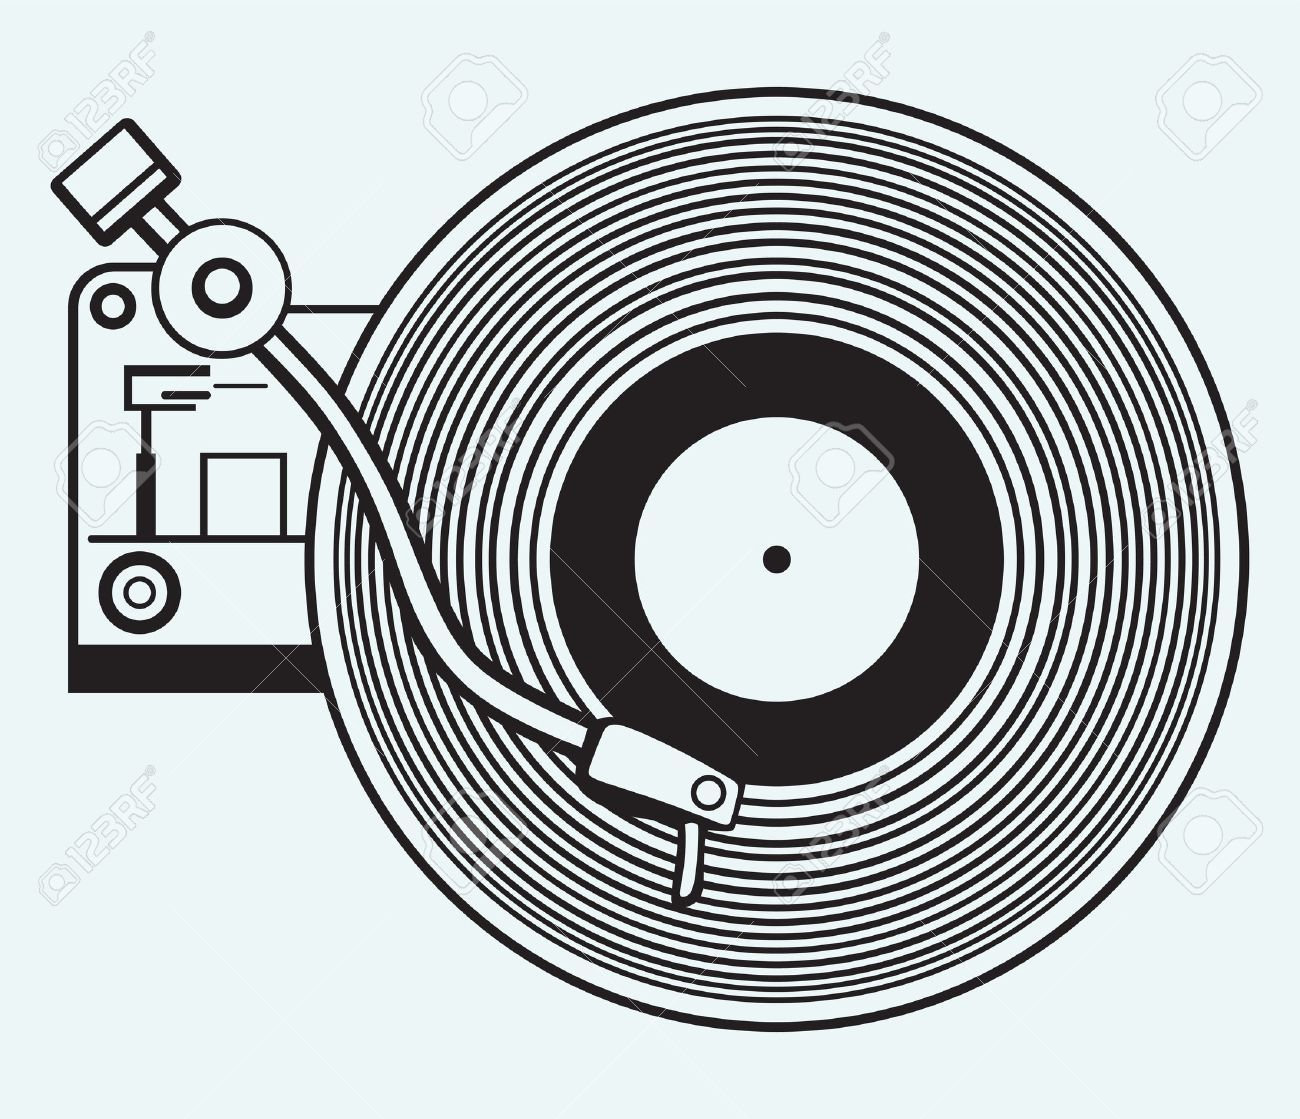 Image Result For Record Illustration Record Player Tattoo Record Player Vinyl Record Art